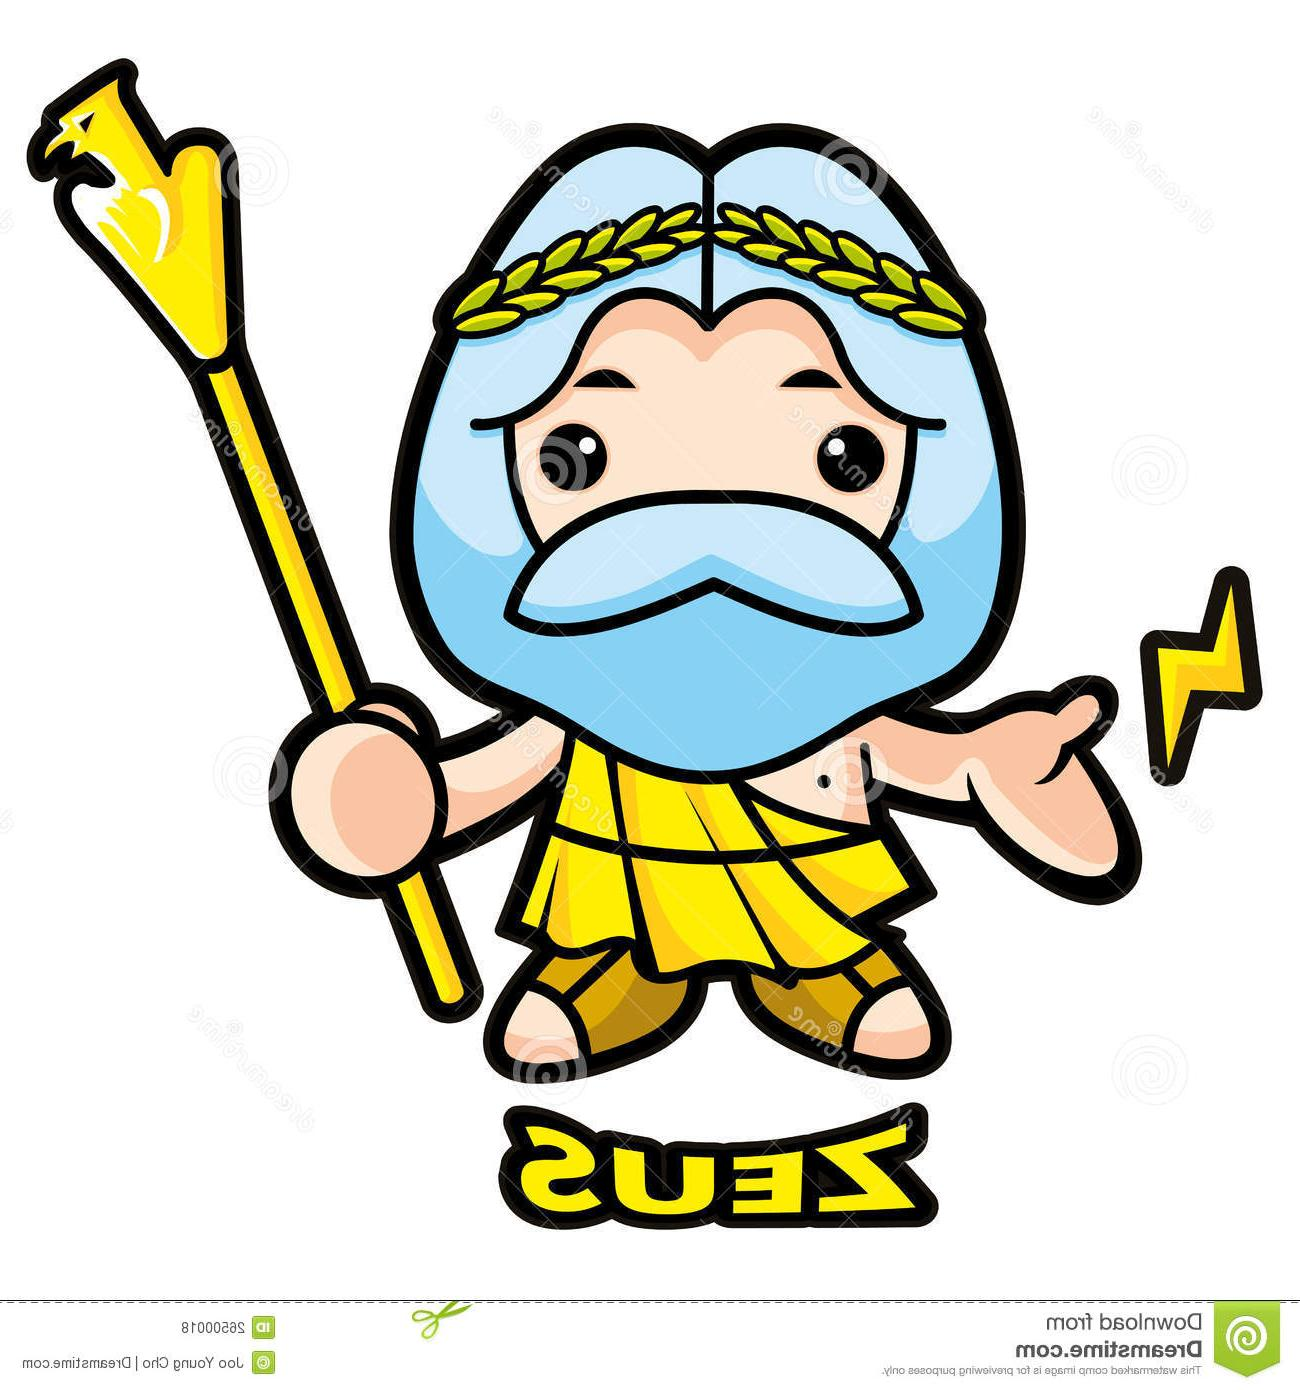 graphic free download Free download best on. Zeus clipart cartoon